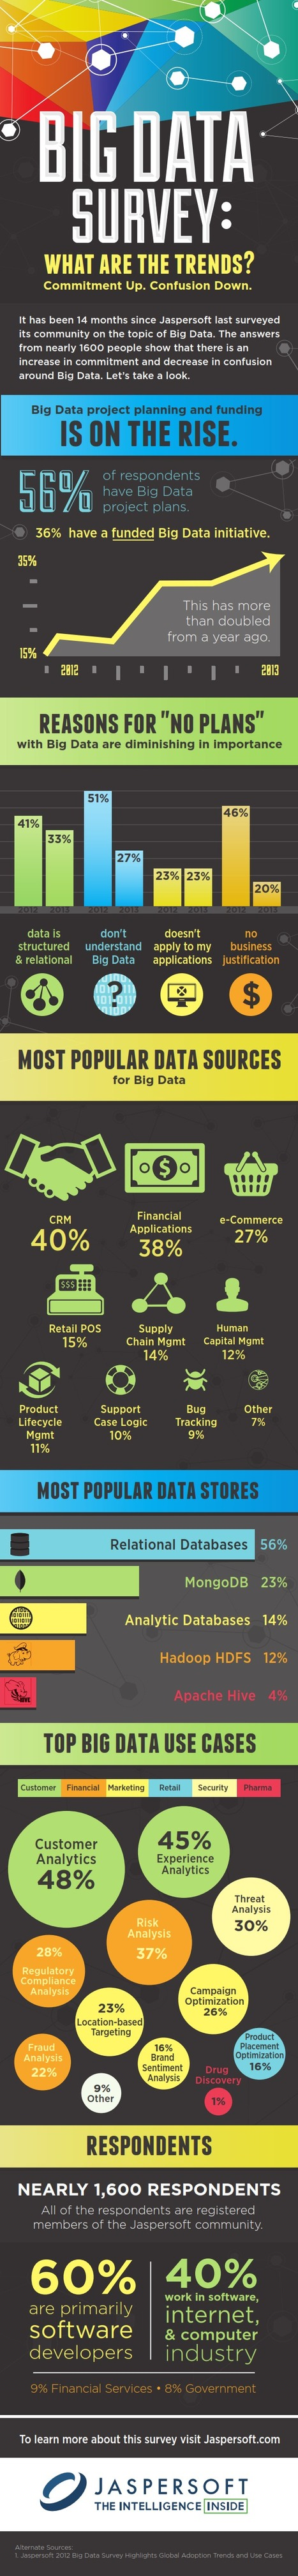 INFOGRAPHIC: Big Data Survey: What Are The Trends? | Cloud Central | Scoop.it